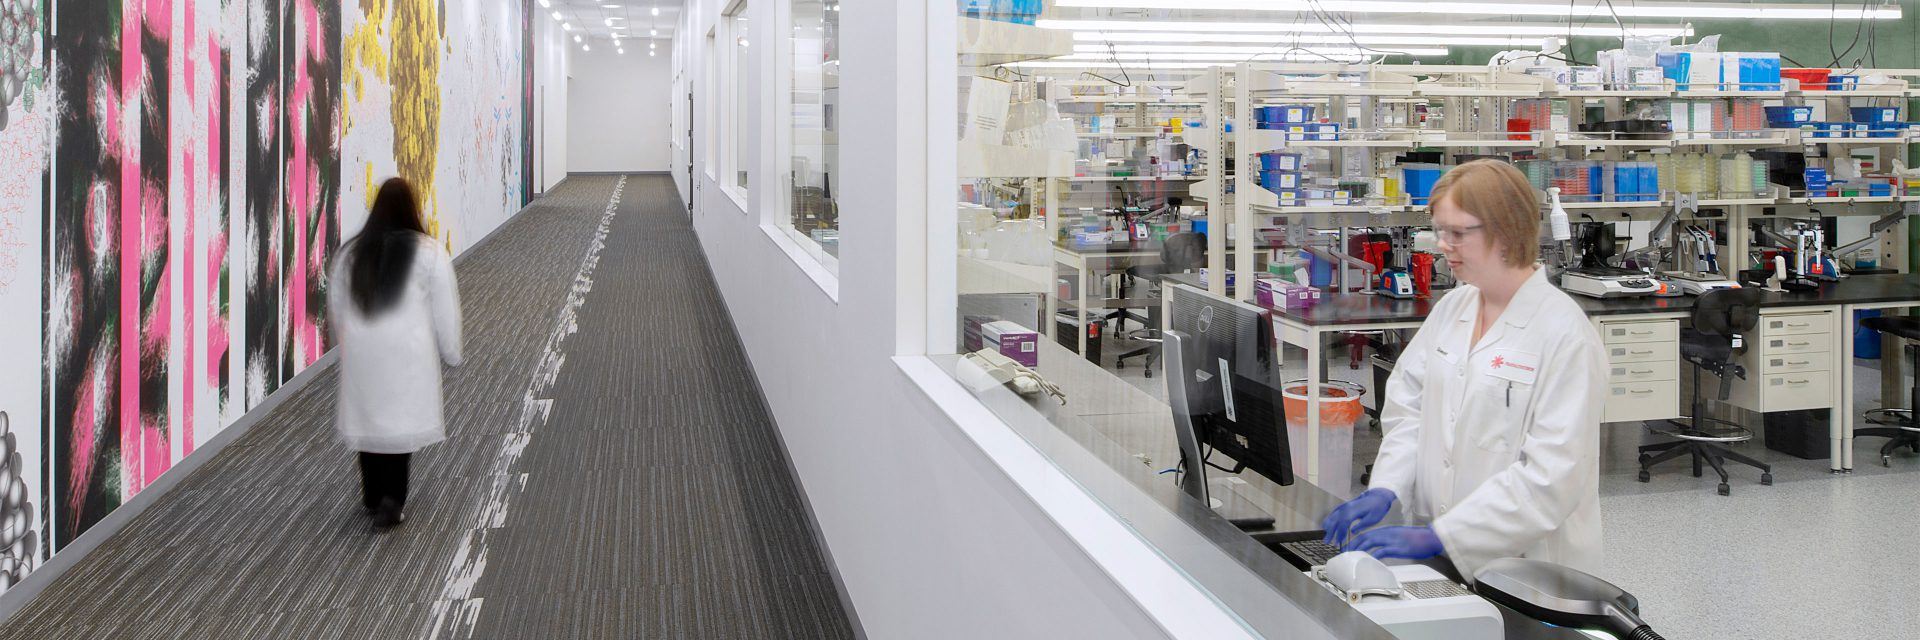 Bioanalytical Laboratory Facility Design + Construction